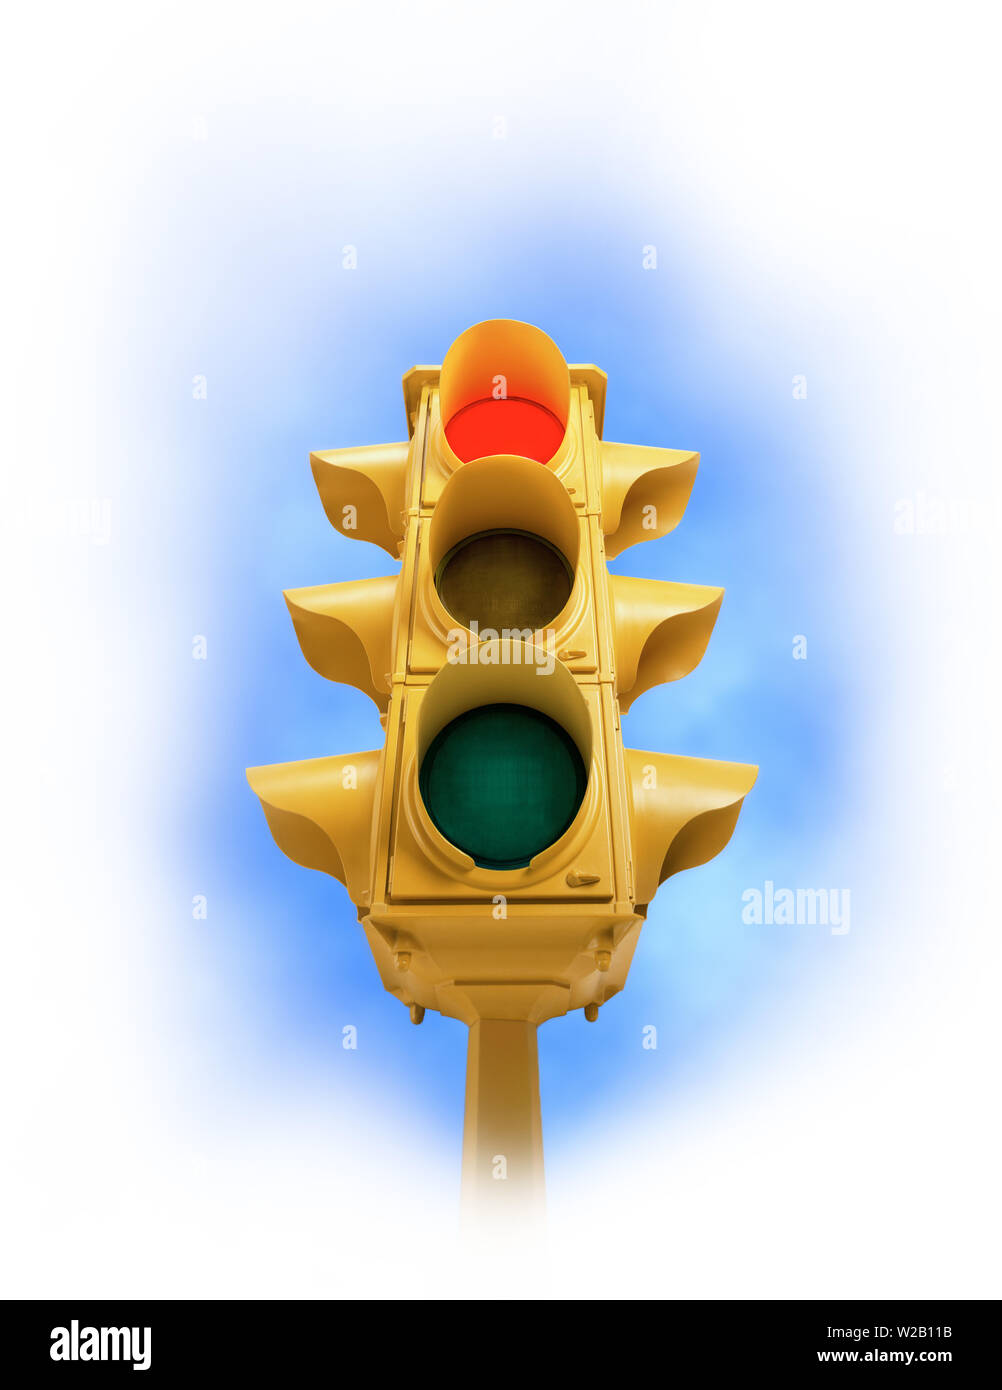 Upward view of tall vintage yellow traffic signal with red light on white vignette background - Stock Image